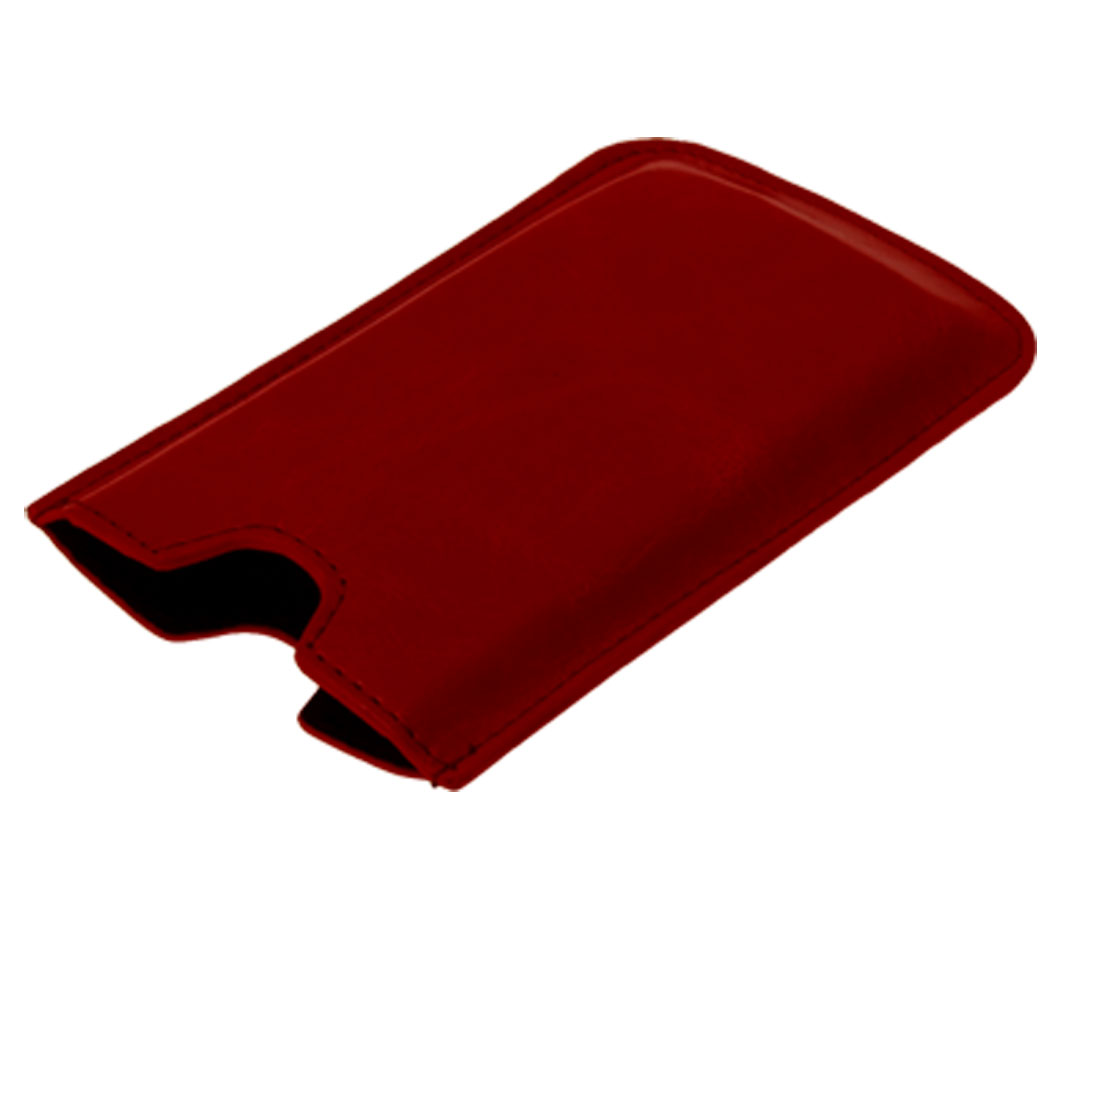 Fashion Red Protective Leather Pouch Case for iPhone 3G